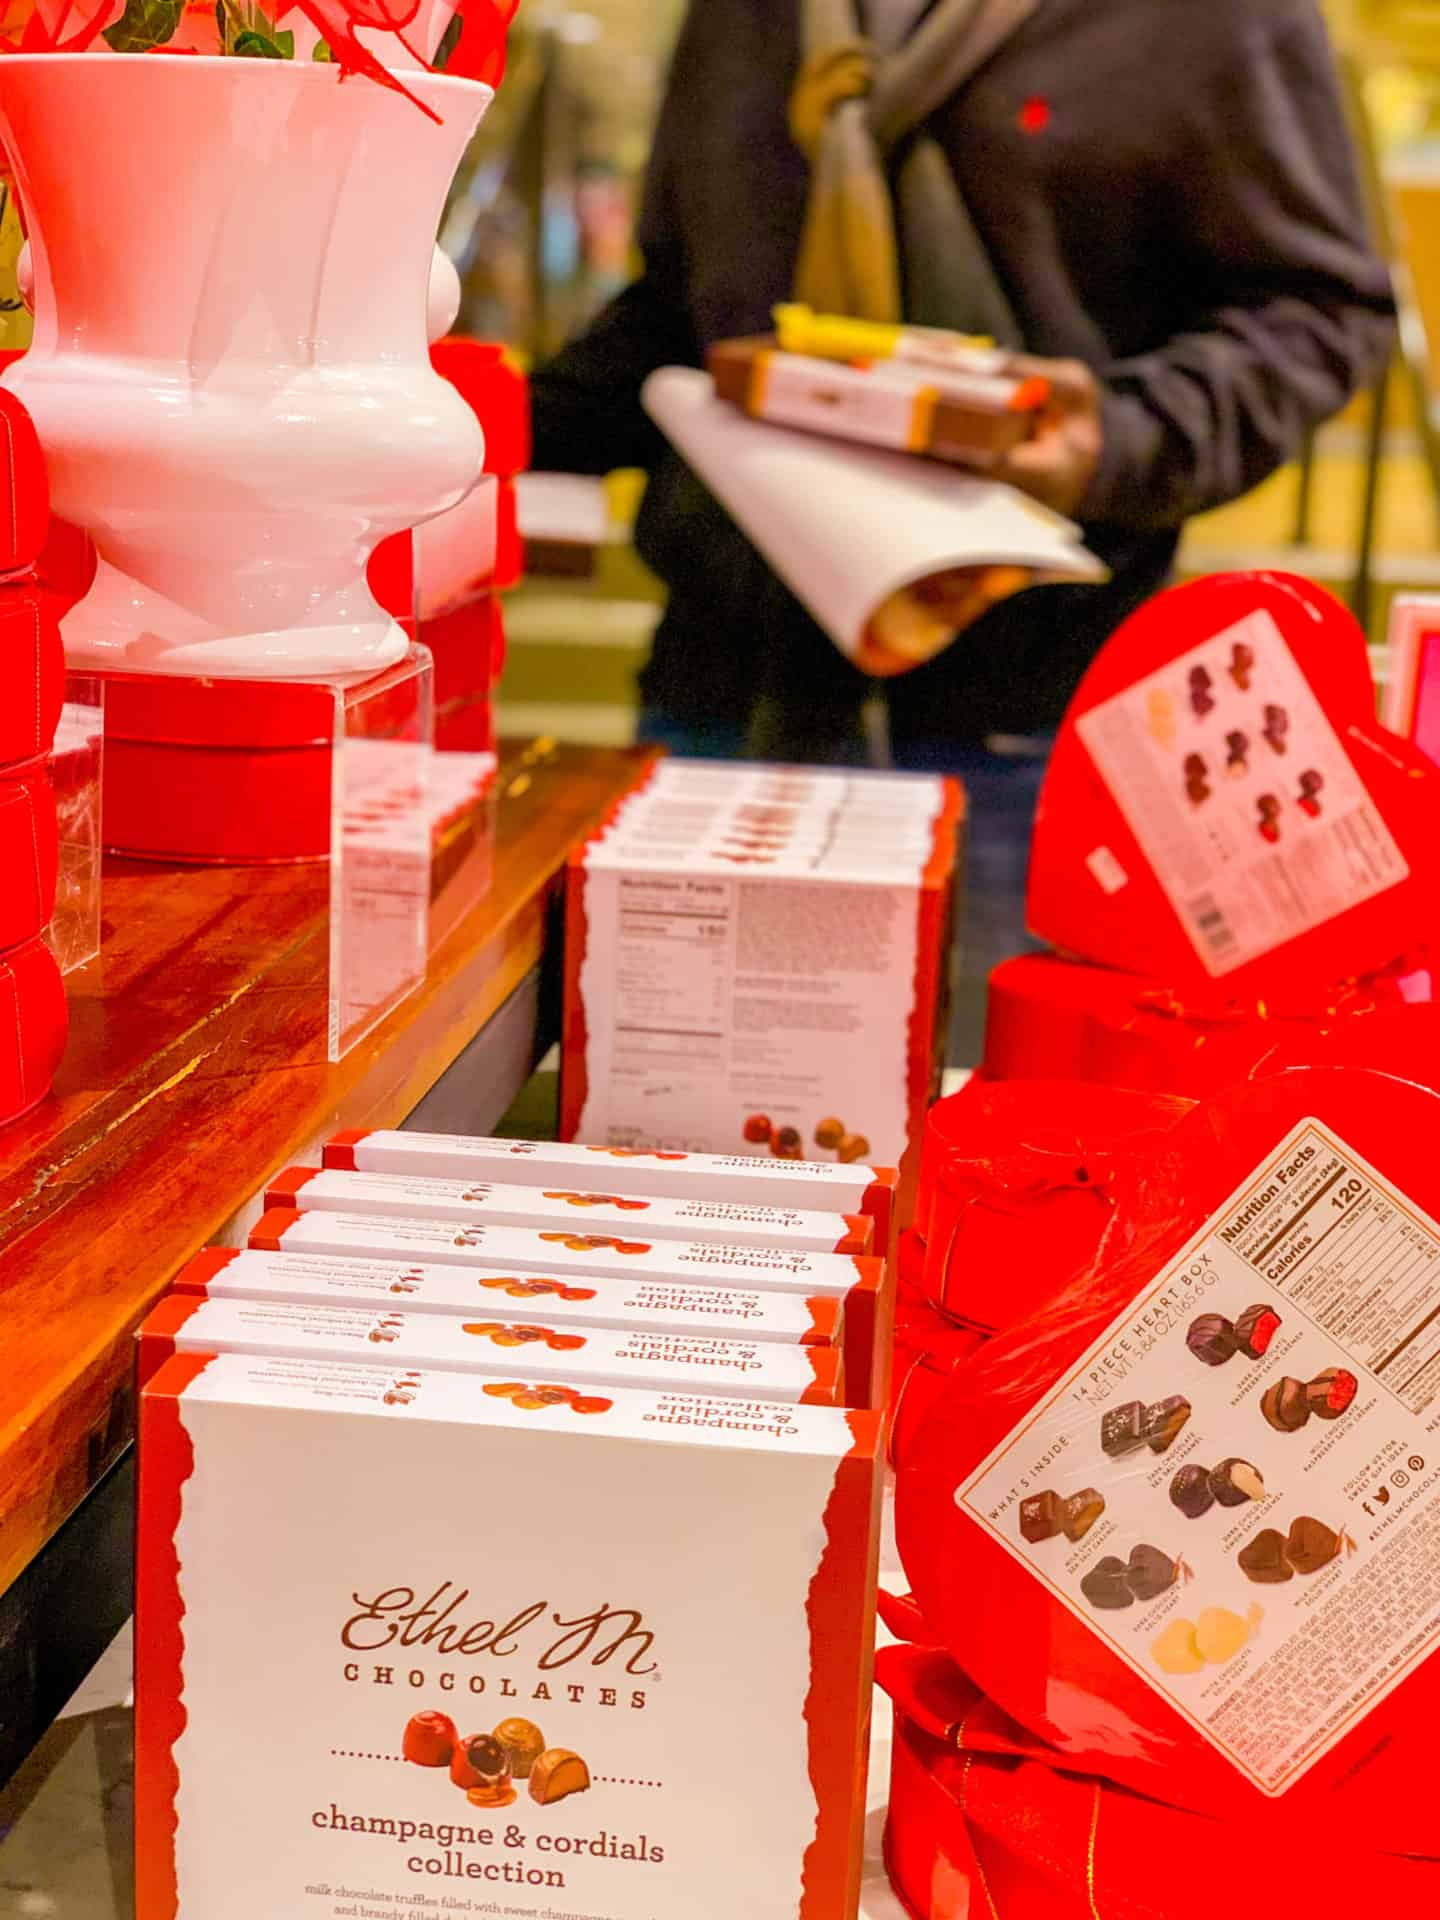 Ethel M Chocolates Champagne & Cordials Collection